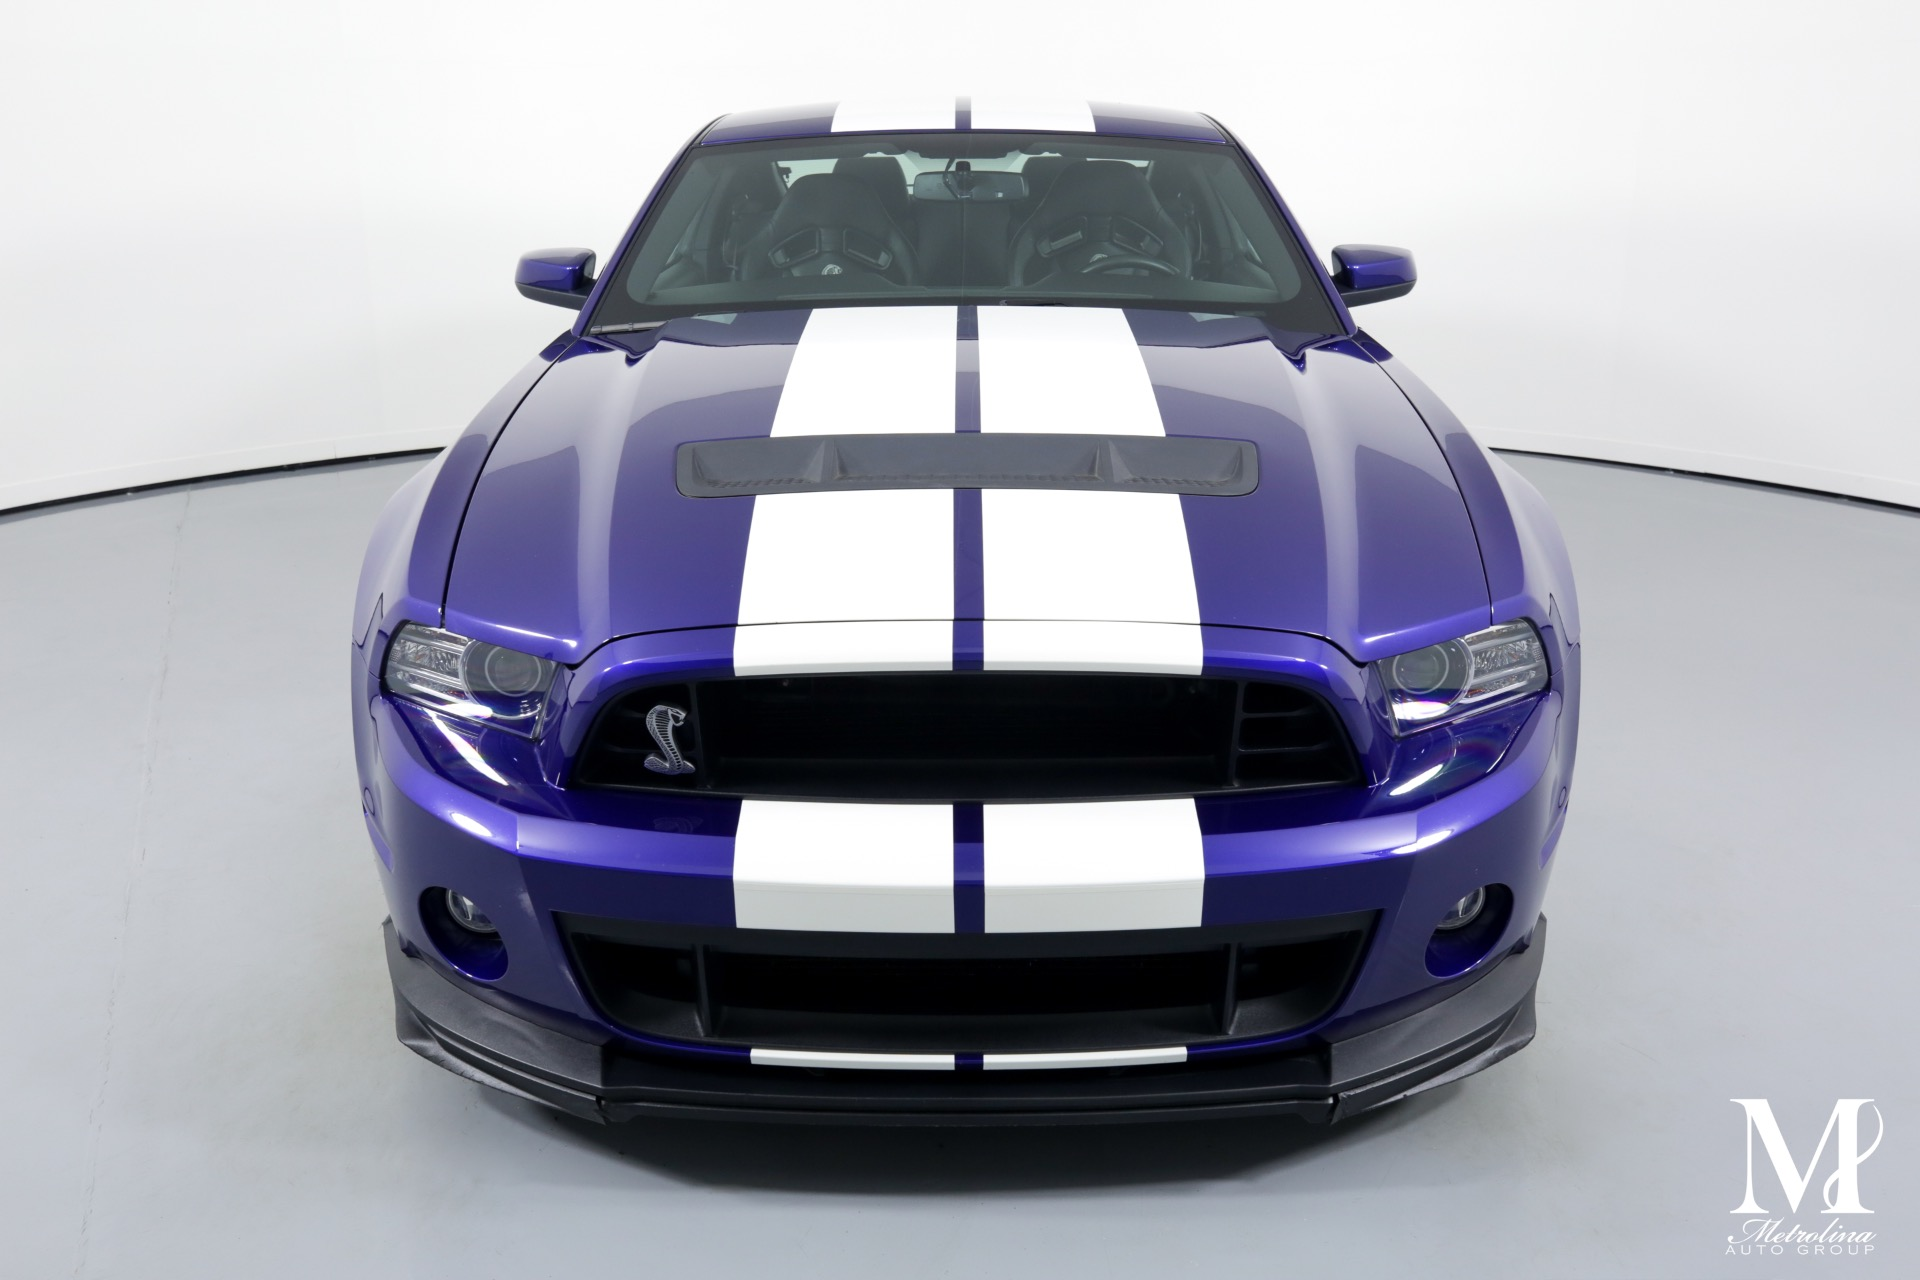 Used 2014 Ford Shelby GT500 for sale Sold at Metrolina Auto Group in Charlotte NC 28217 - 3